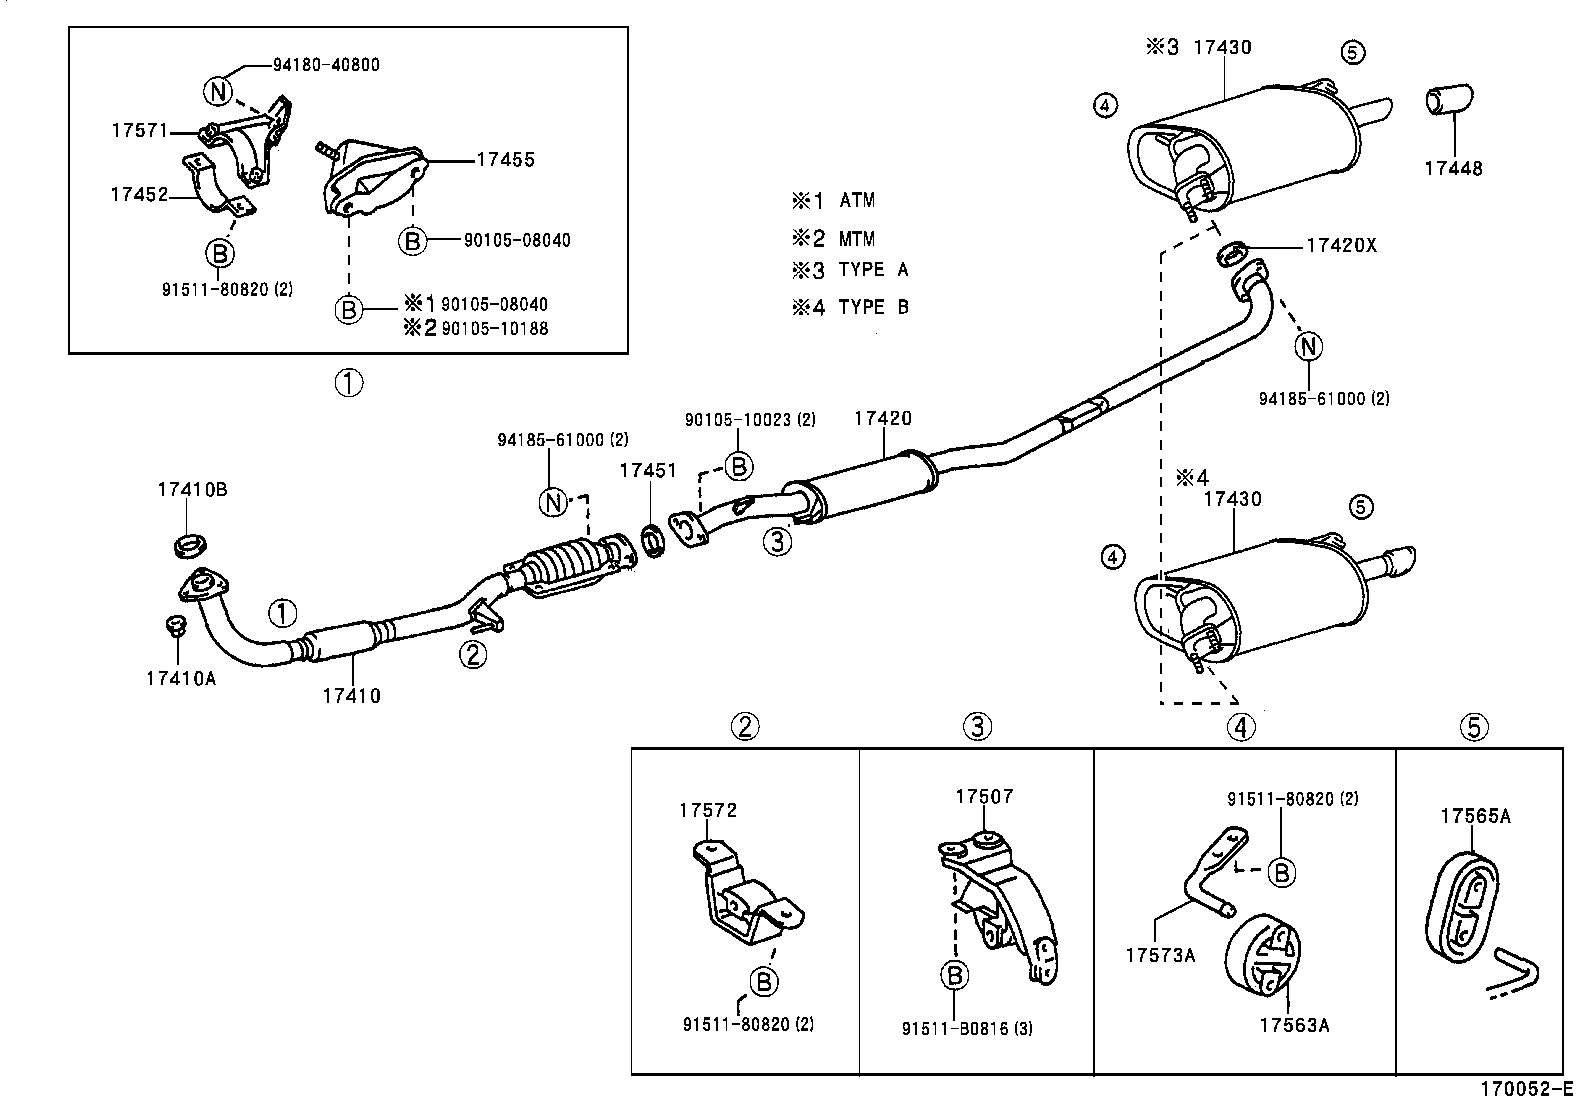 Honda Civic Hx Stereo Wire Diagram